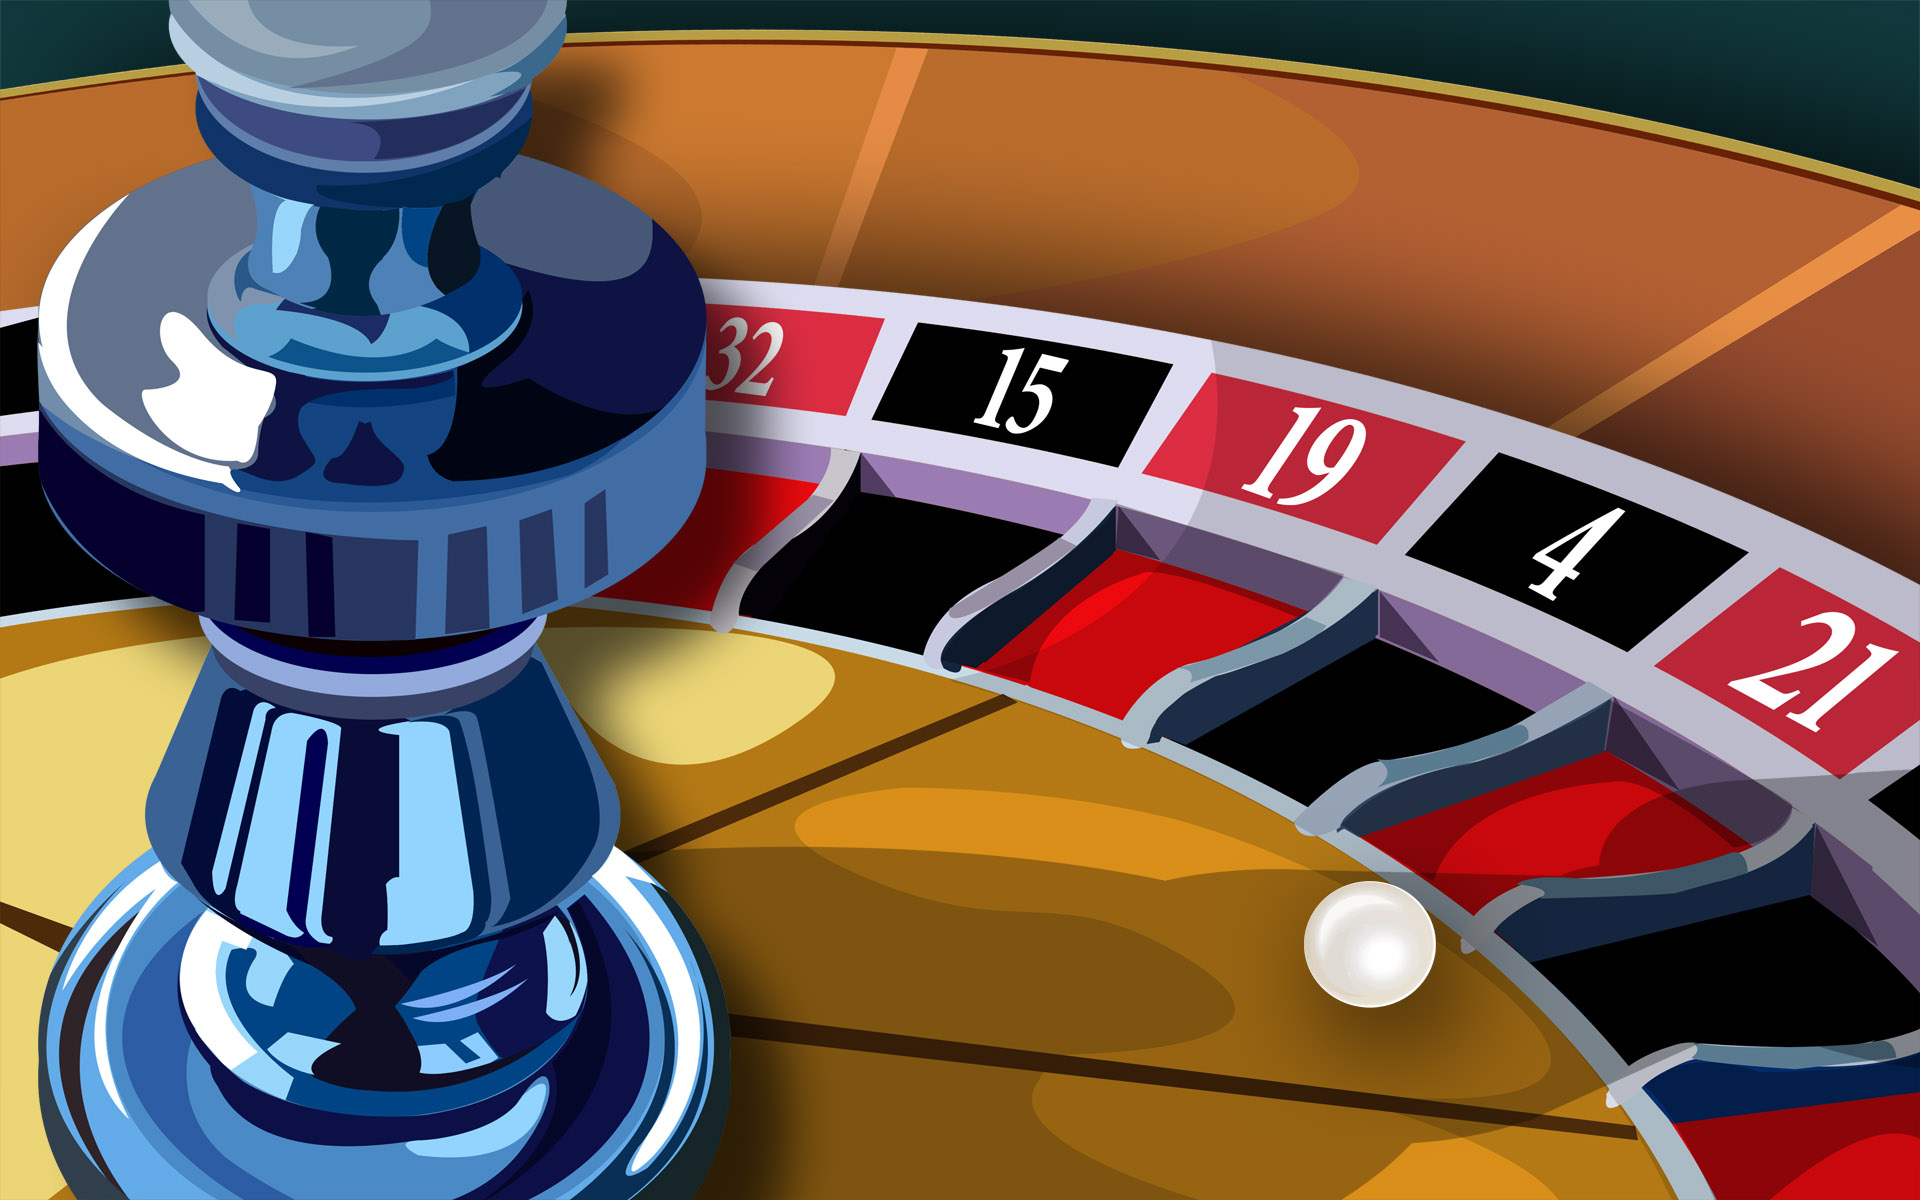 Roulette Wheel clipart las vegas Vegas promos magic Casino now